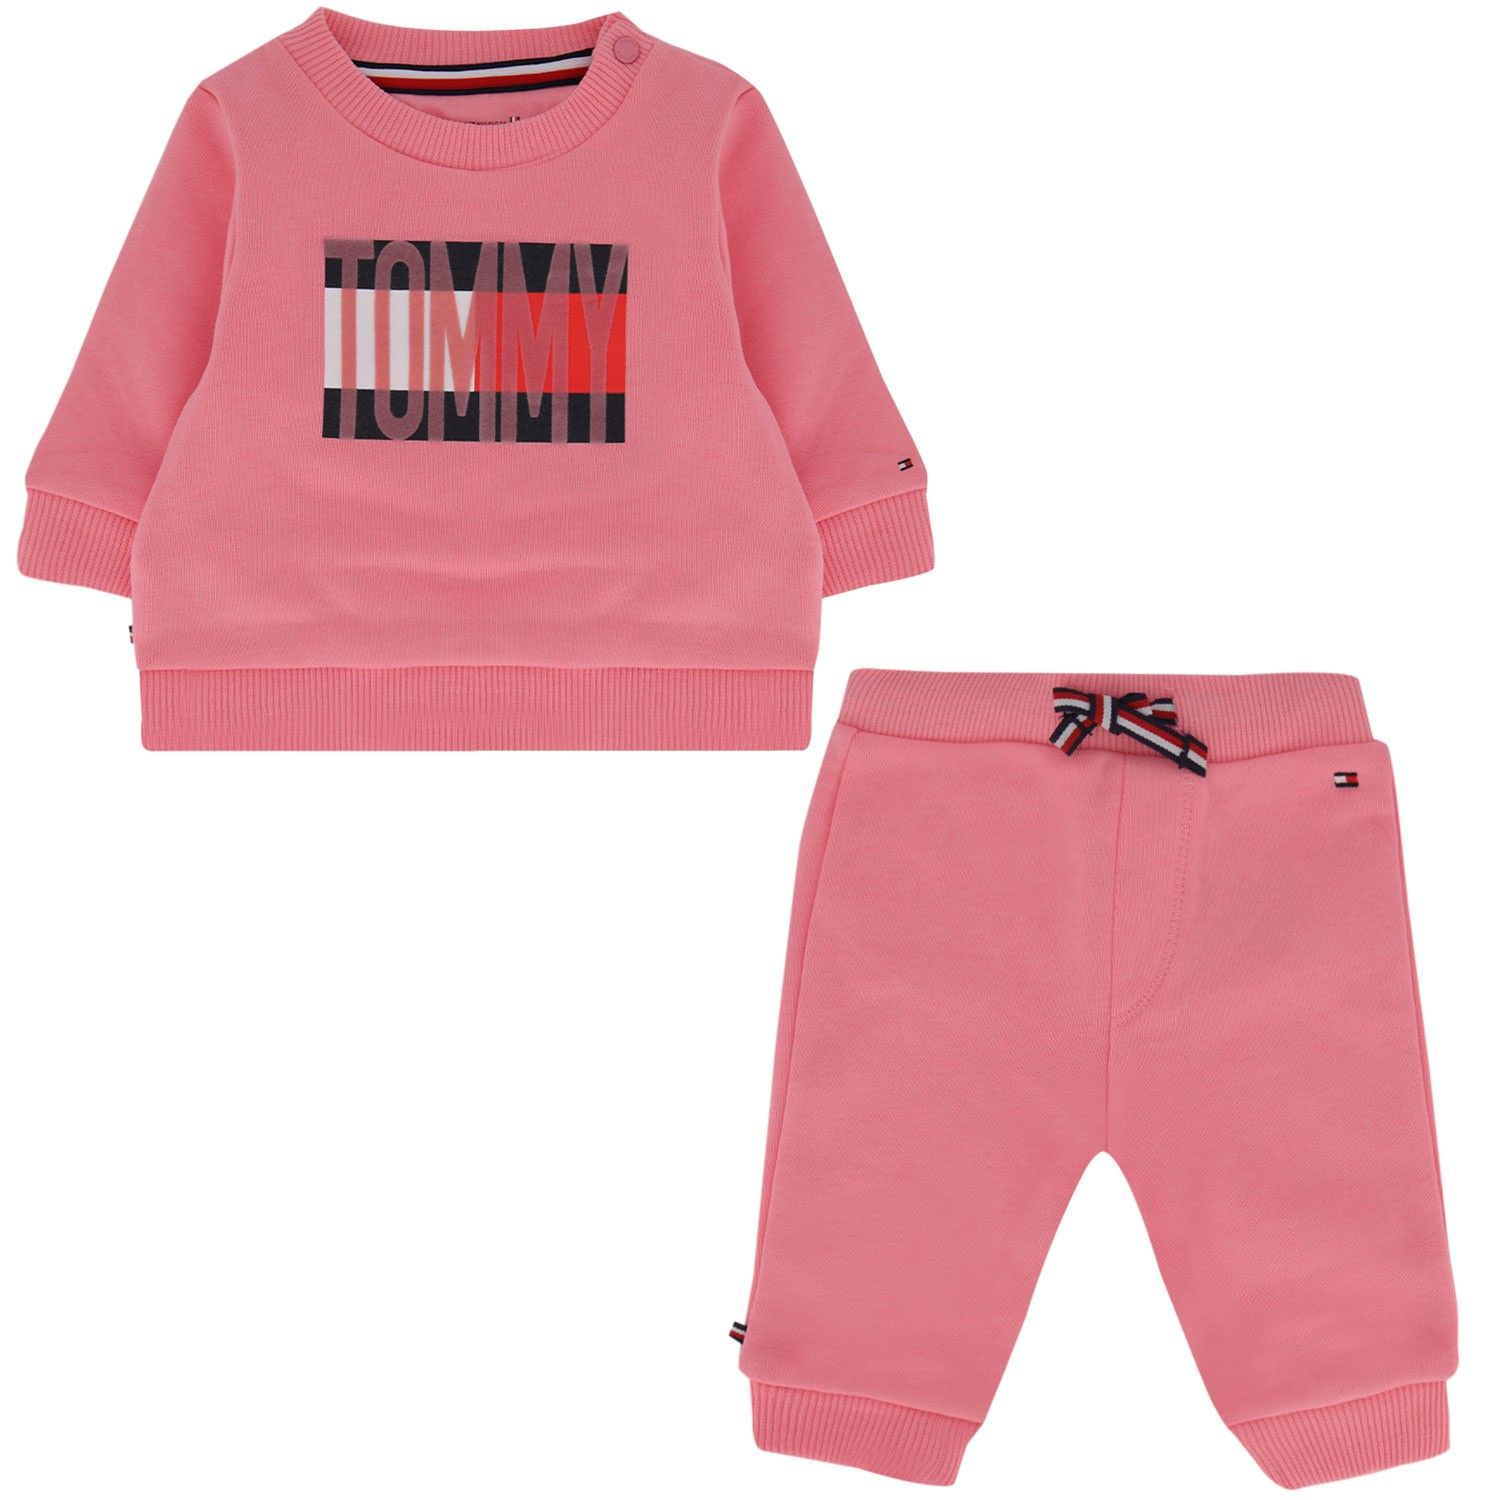 Picture of Tommy Hilfiger KN0KN01172 baby set pink